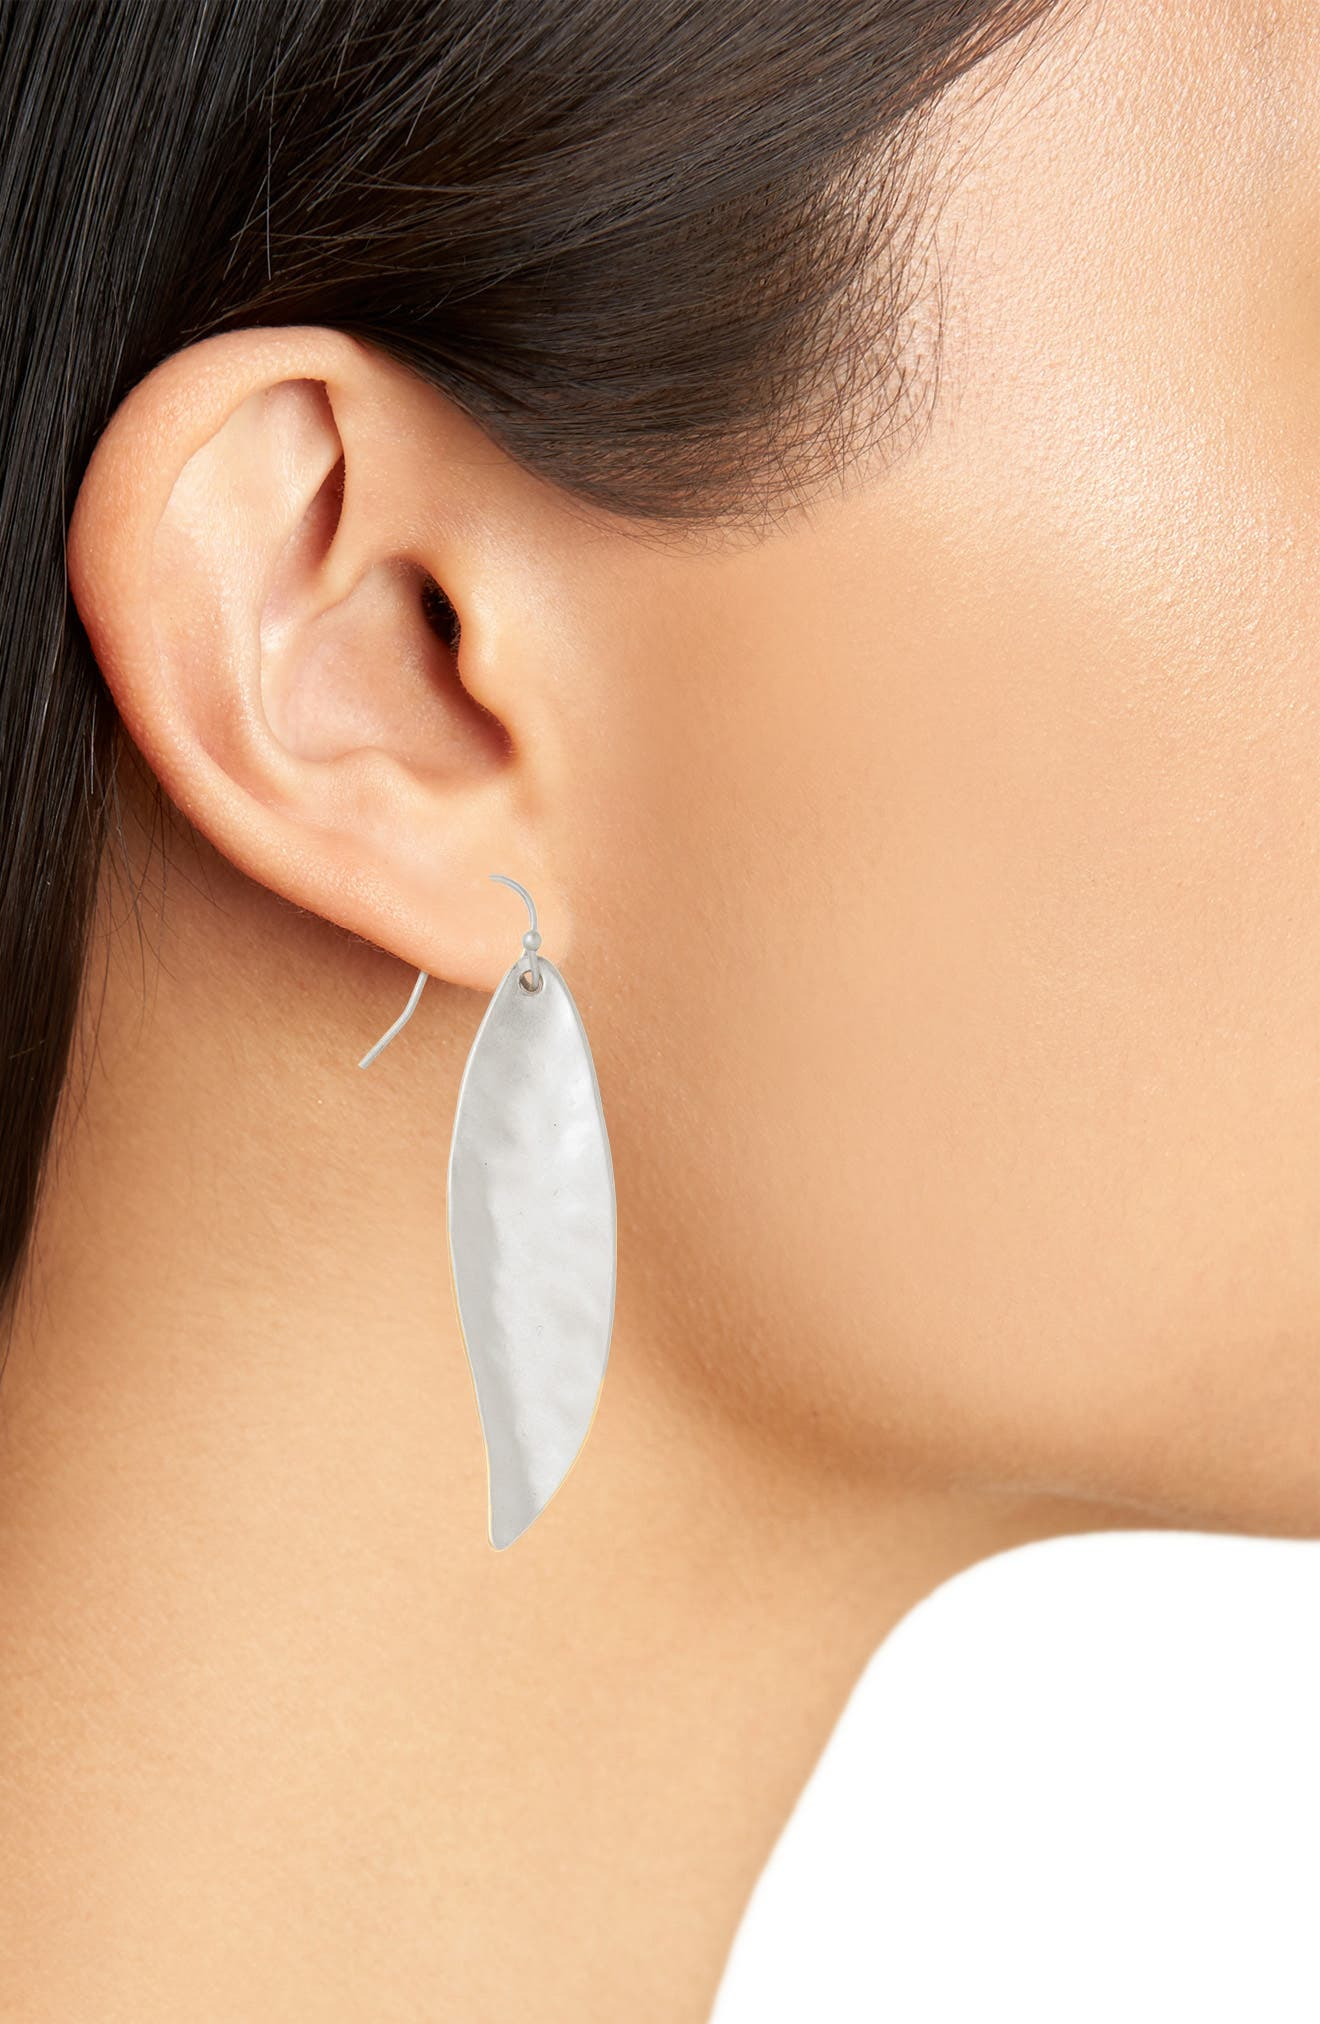 Ellipse Drop Earrings,                             Alternate thumbnail 2, color,                             040